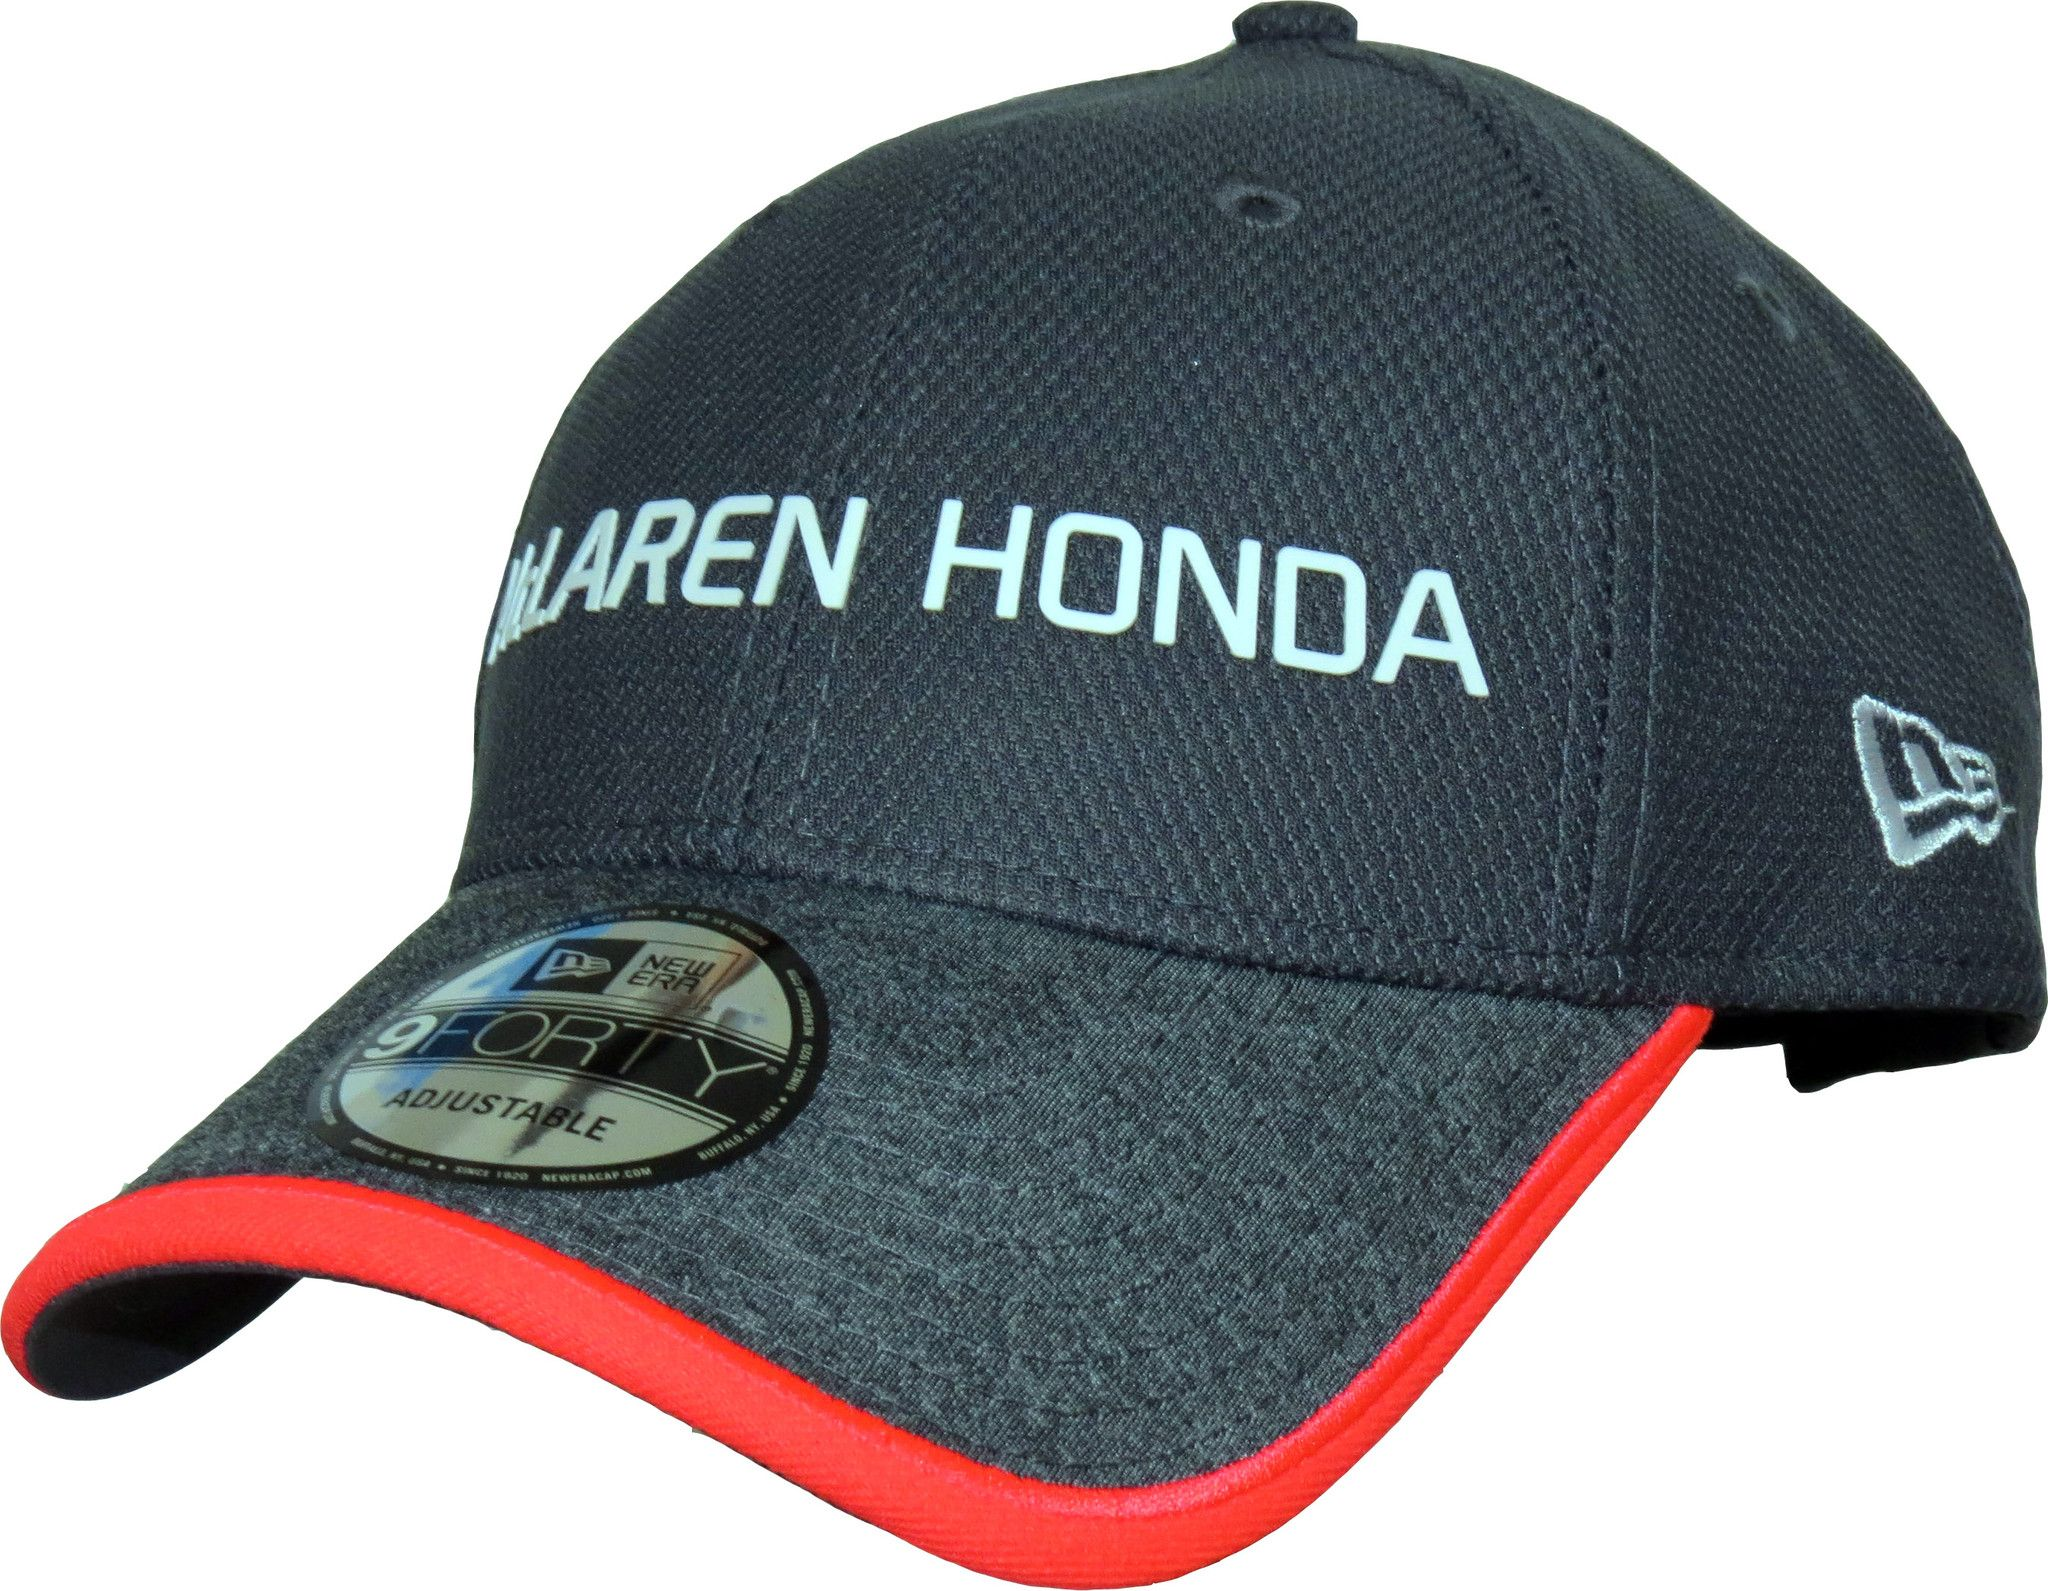 McLaren Honda Official Team New Era 940 Cap  b6d858099665